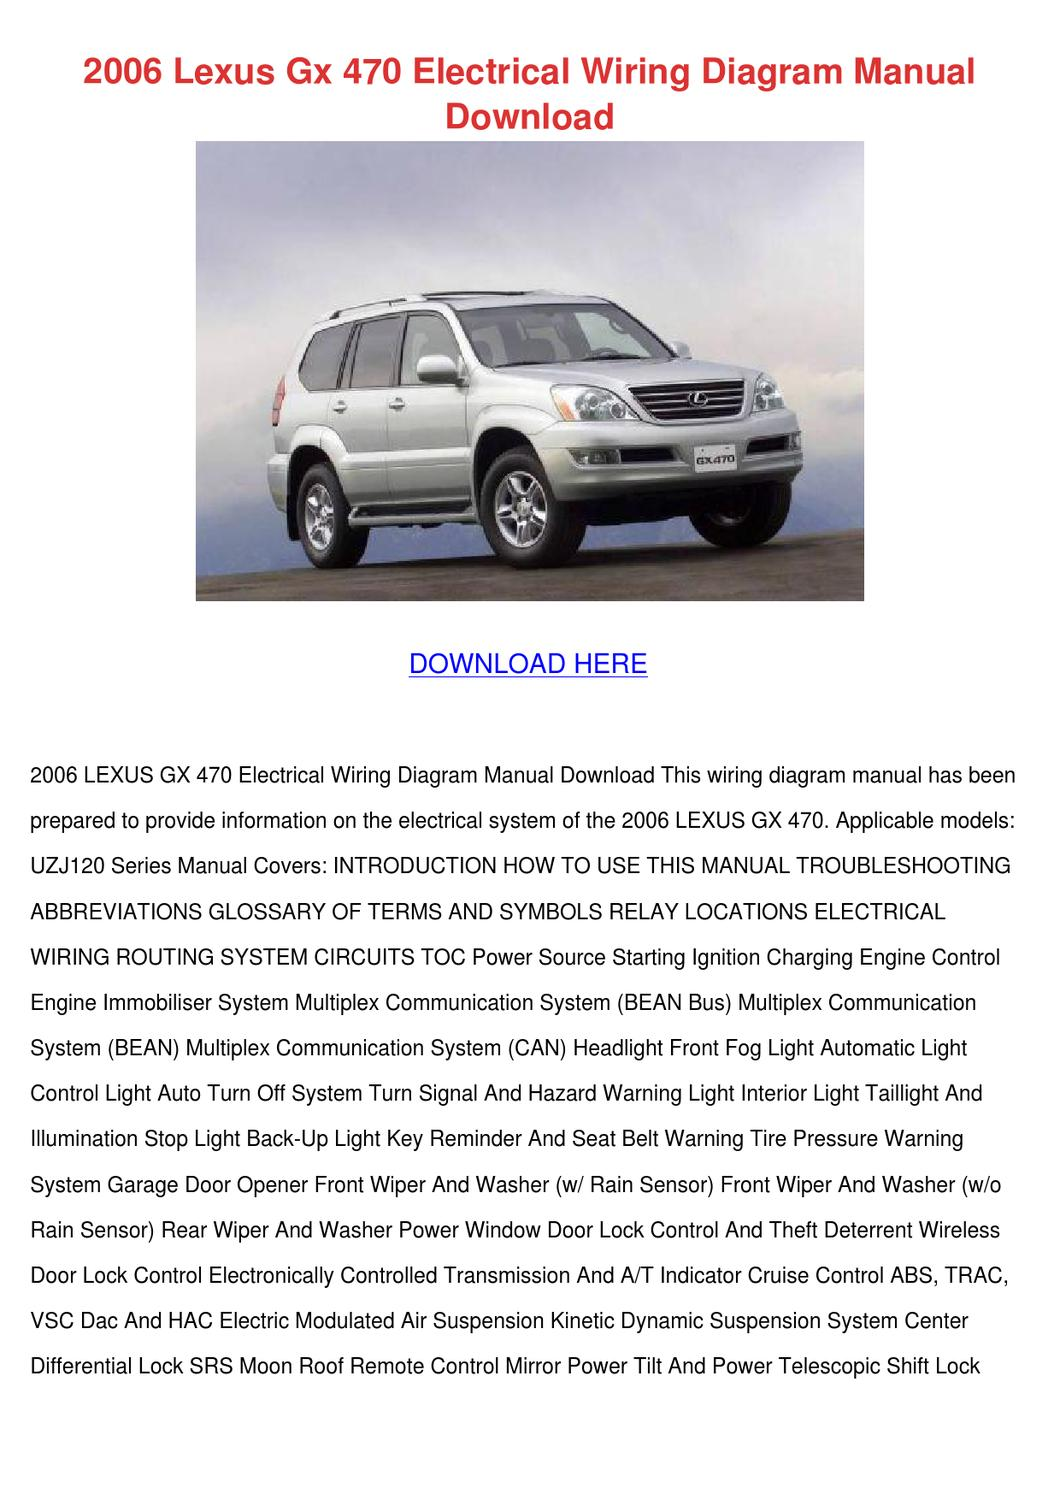 [SCHEMATICS_4LK]  2006 Lexus Gx 470 Electrical Wiring Diagram M by MeaganJewett - issuu | Lexus Lx 470 Wiring Diagram |  | Issuu